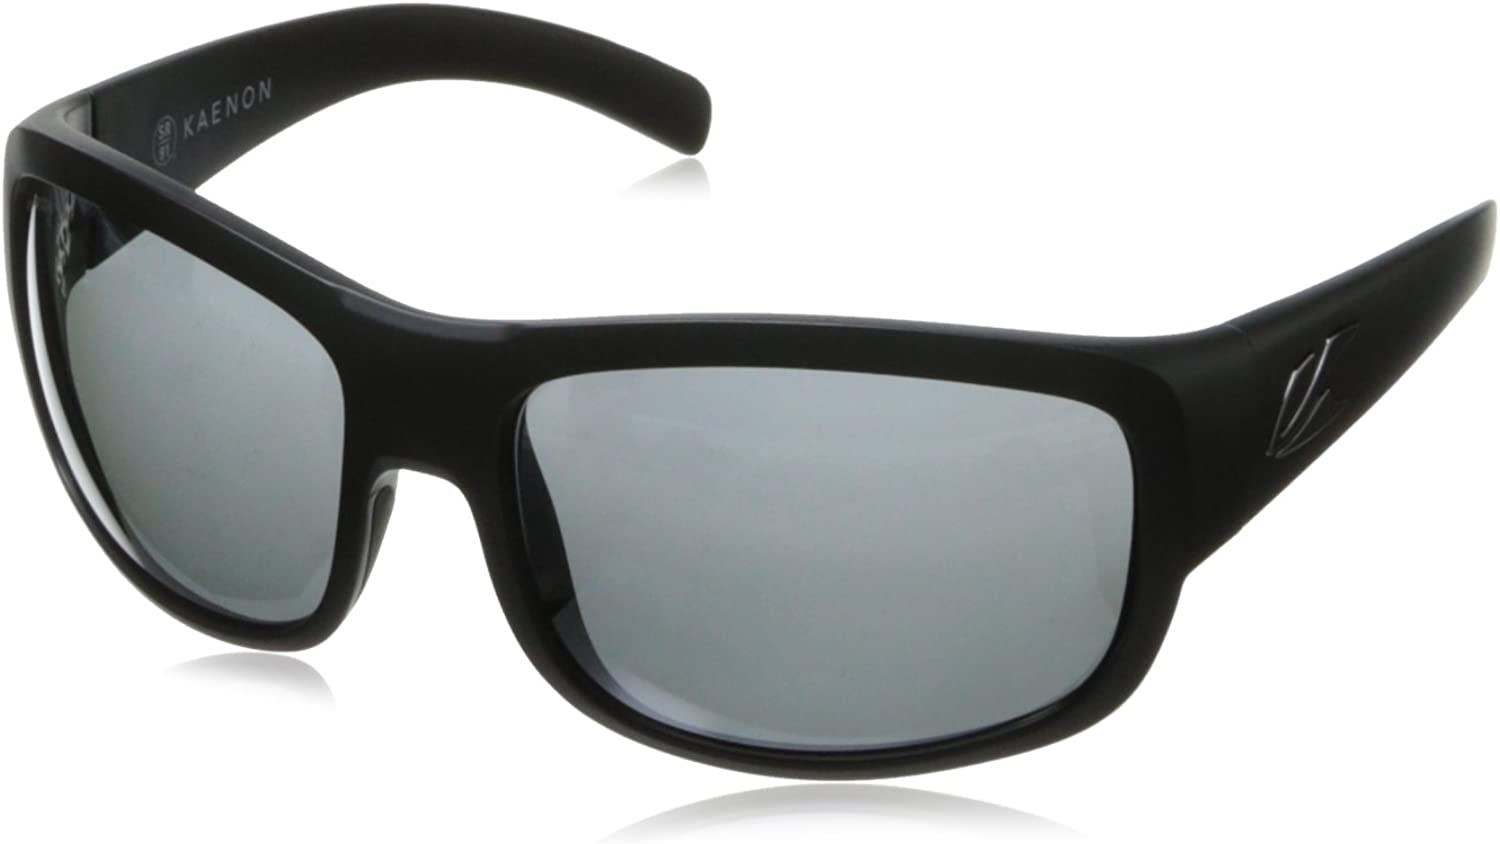 Kaenon Men's Ozlo Black Label G12m Oval Polarized Sunglasses